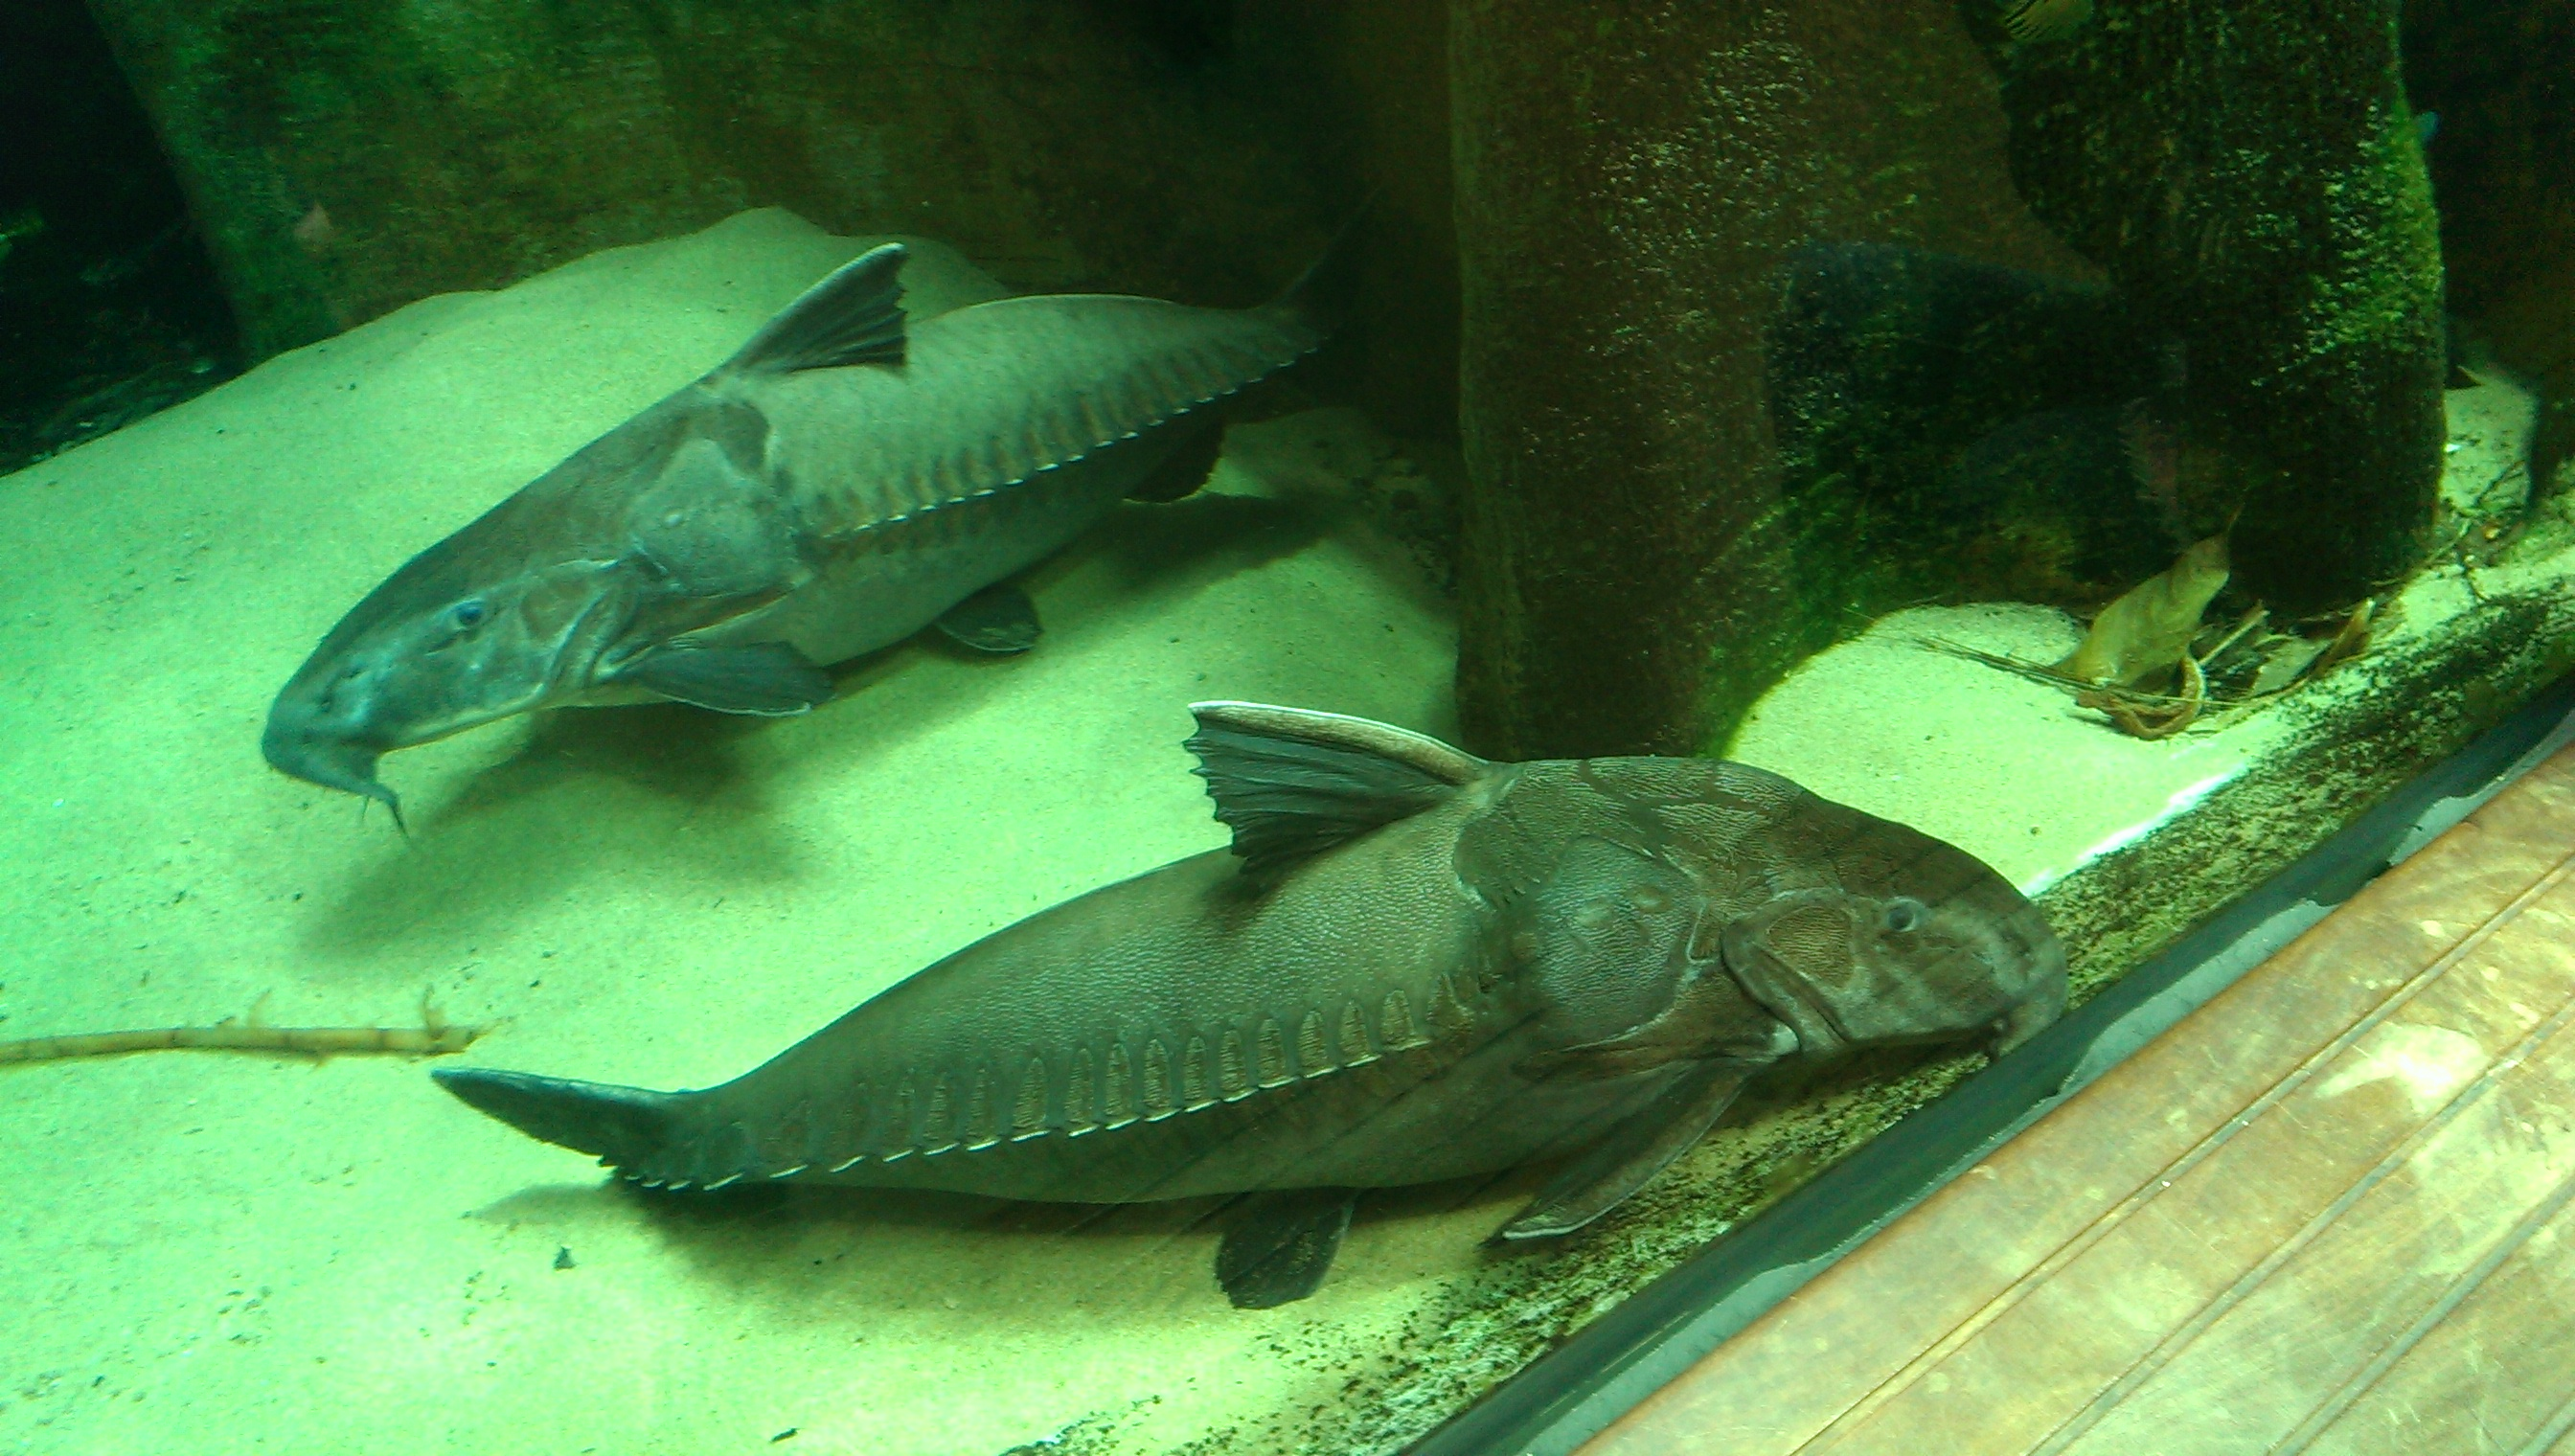 Aquarium armorhead catfish photo and wallpaper cute for Fish tank catfish